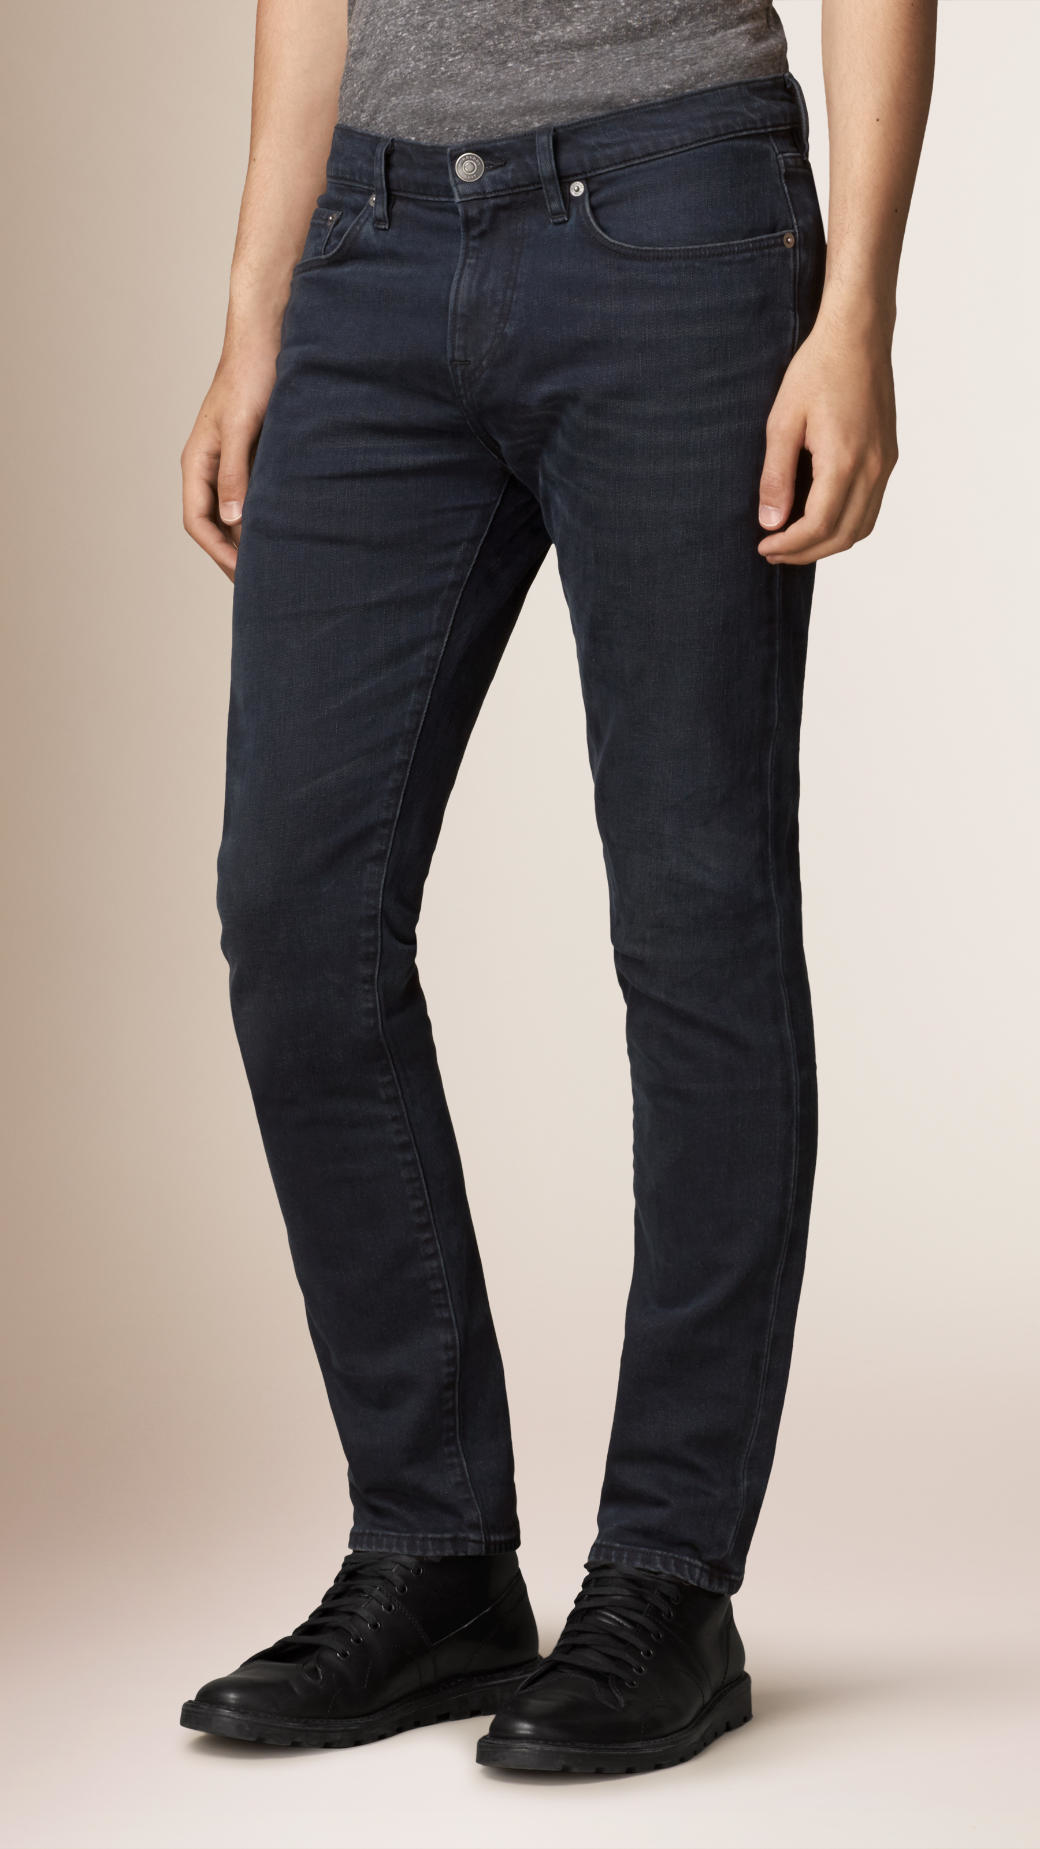 Lyst - Burberry Slim Fit Washed Indigo Jeans in Blue for Men